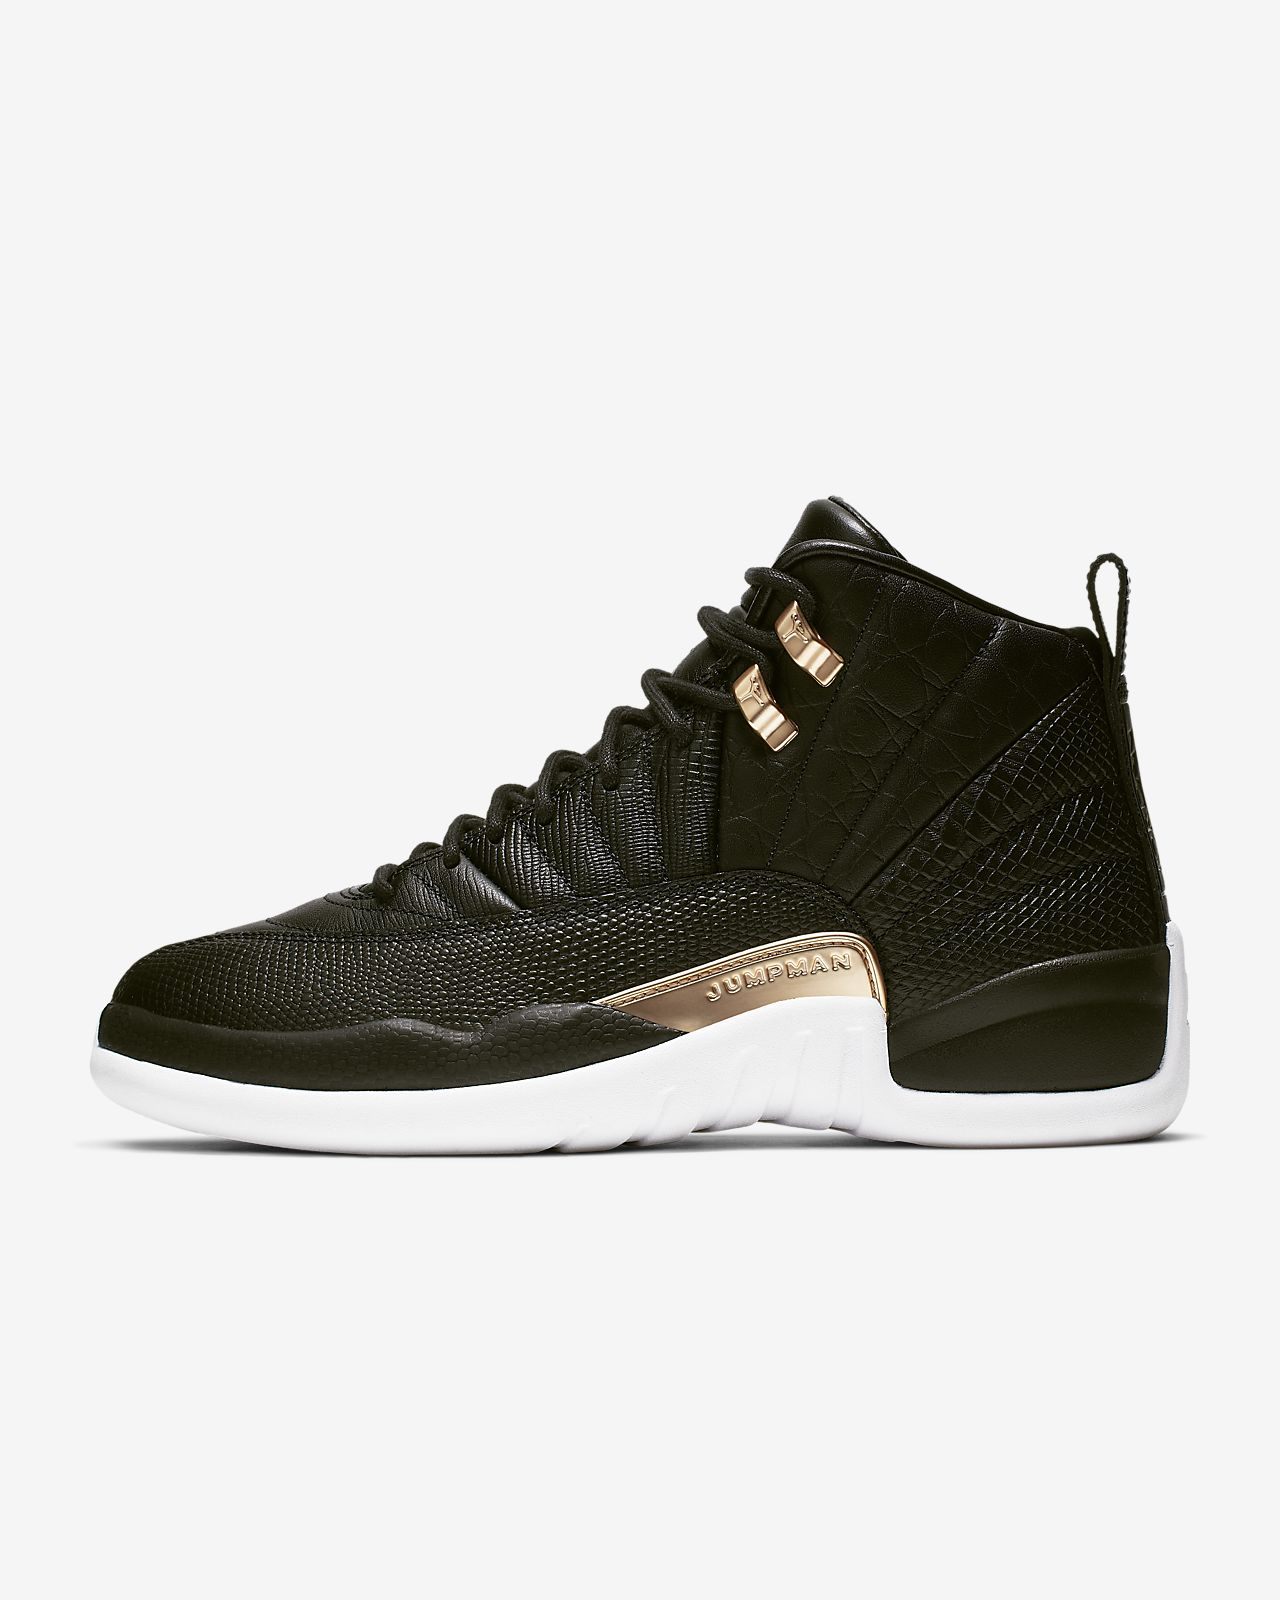 huge selection of 795d9 52333 ... Calzado para mujer Air Jordan 12 Retro